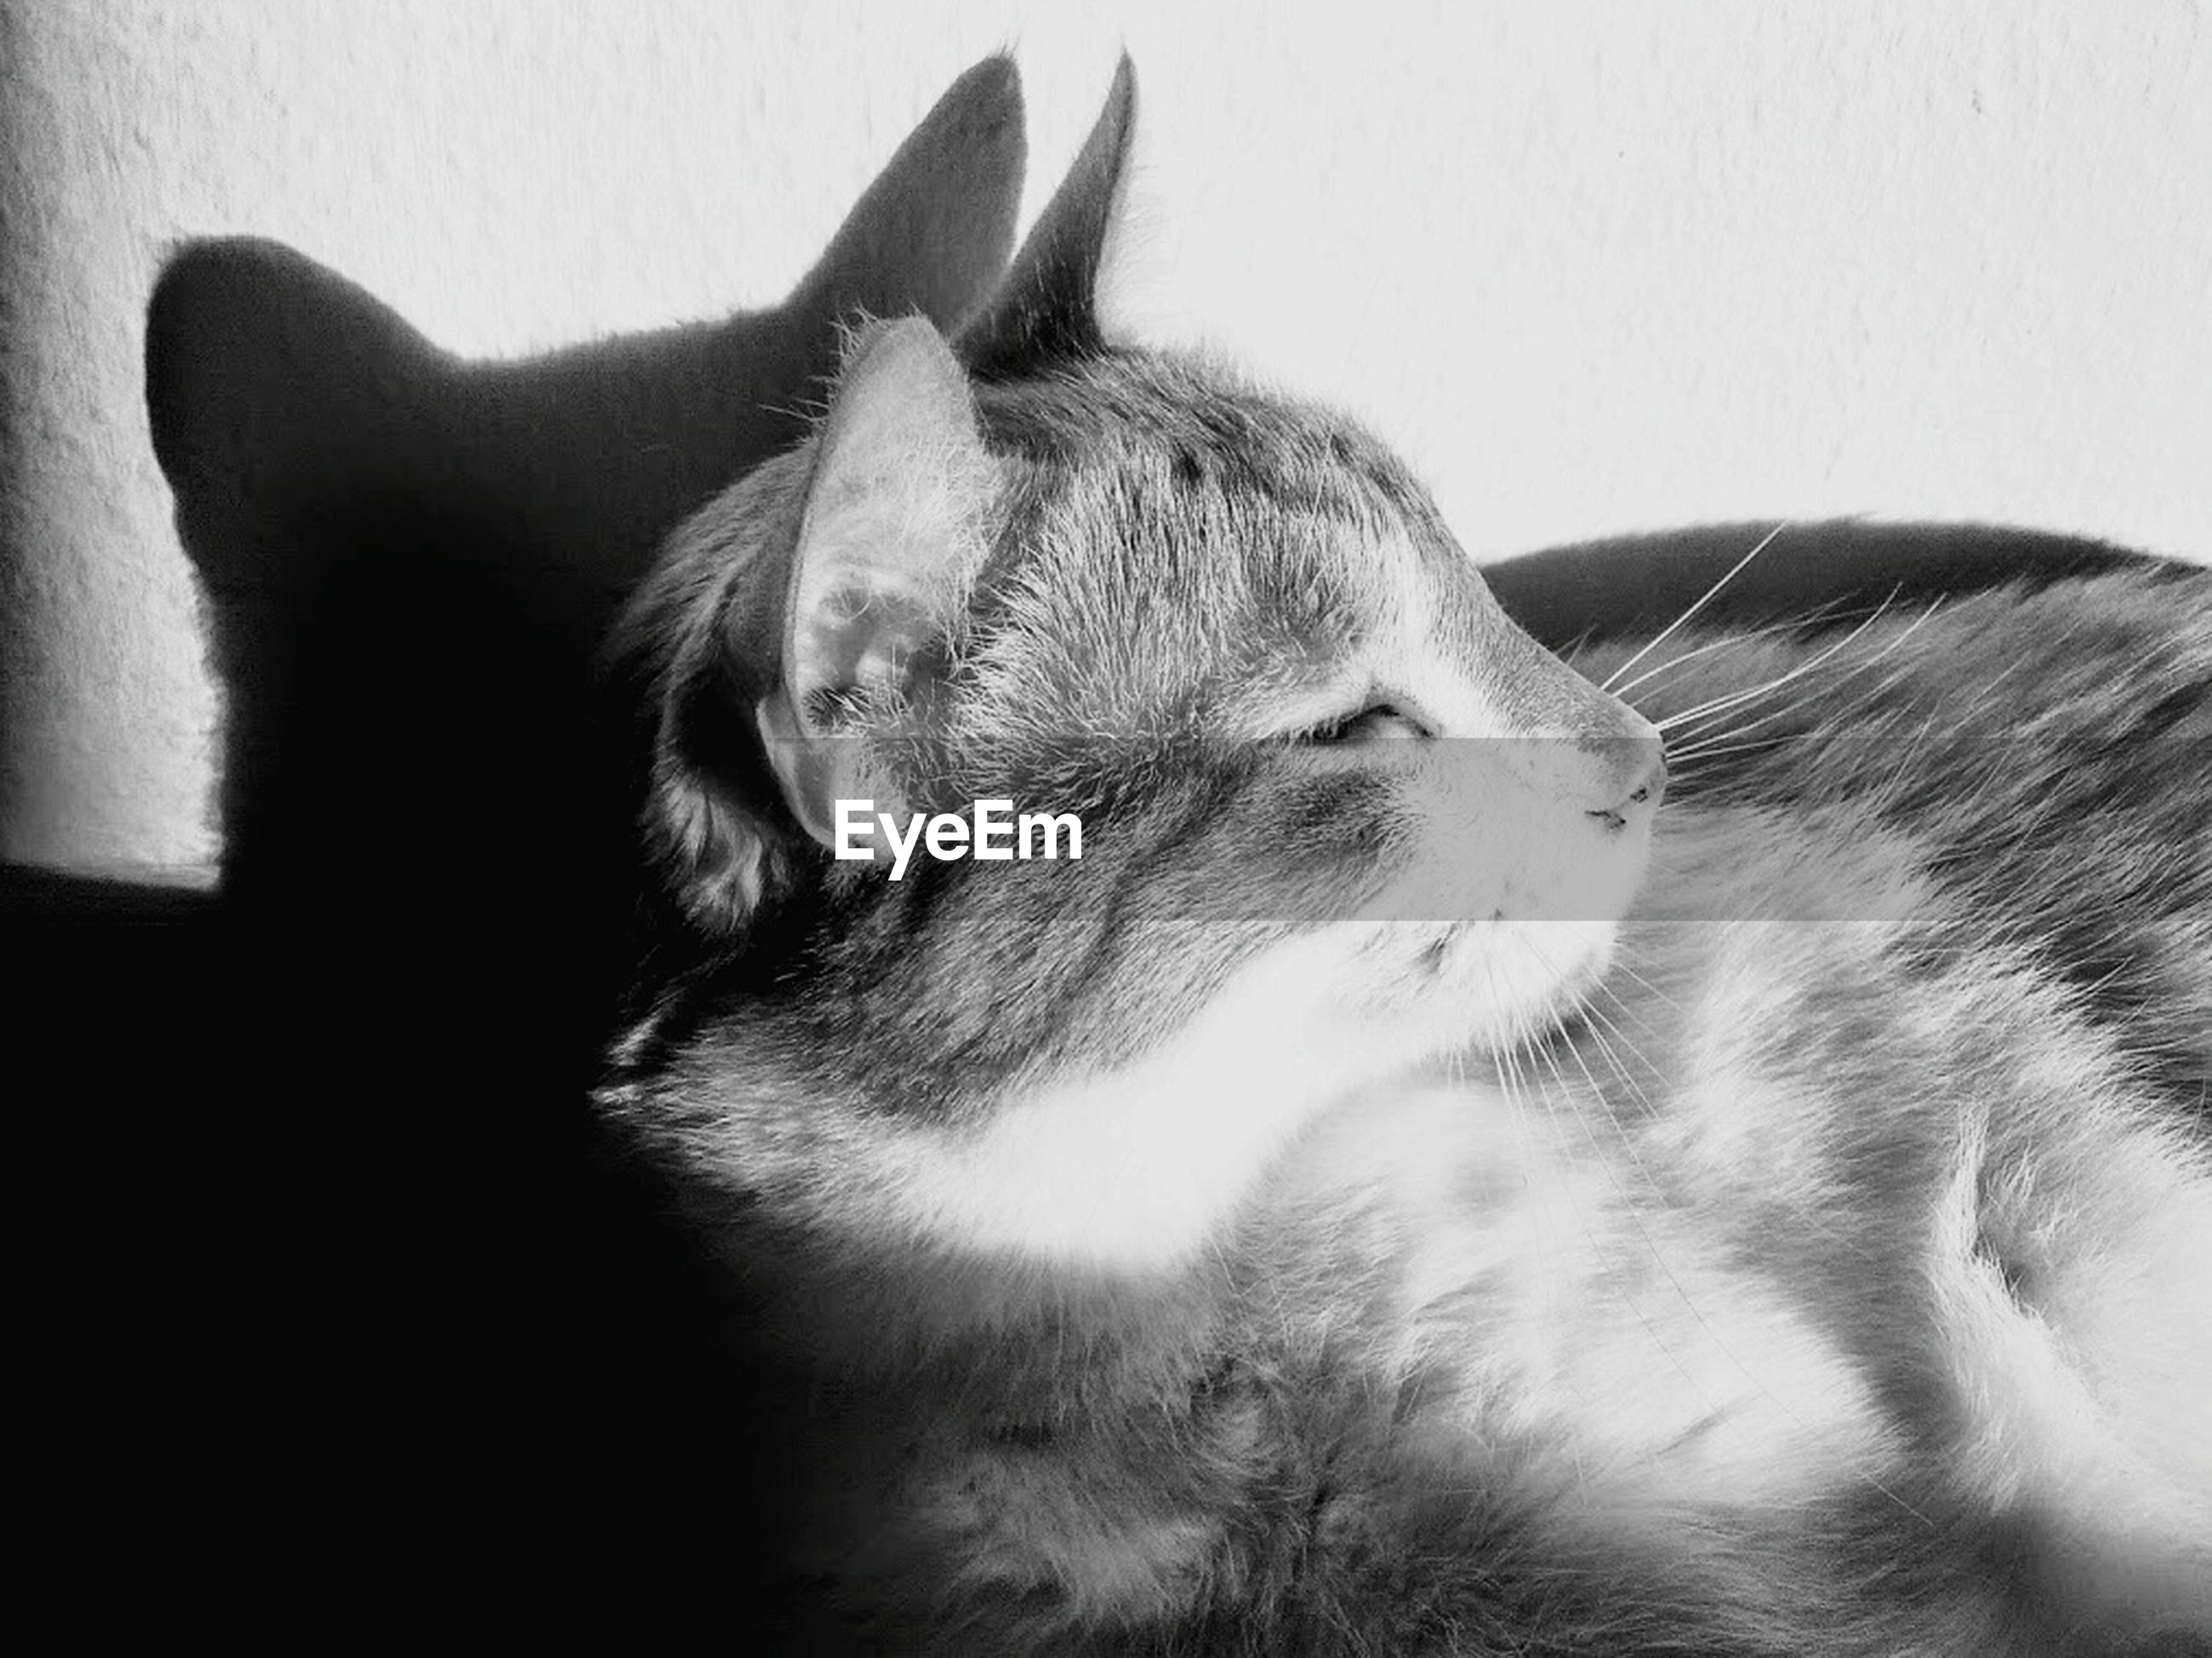 domestic animals, mammal, animal themes, pets, one animal, indoors, domestic cat, relaxation, cat, animal head, resting, feline, sleeping, close-up, lying down, eyes closed, whisker, animal body part, zoology, no people